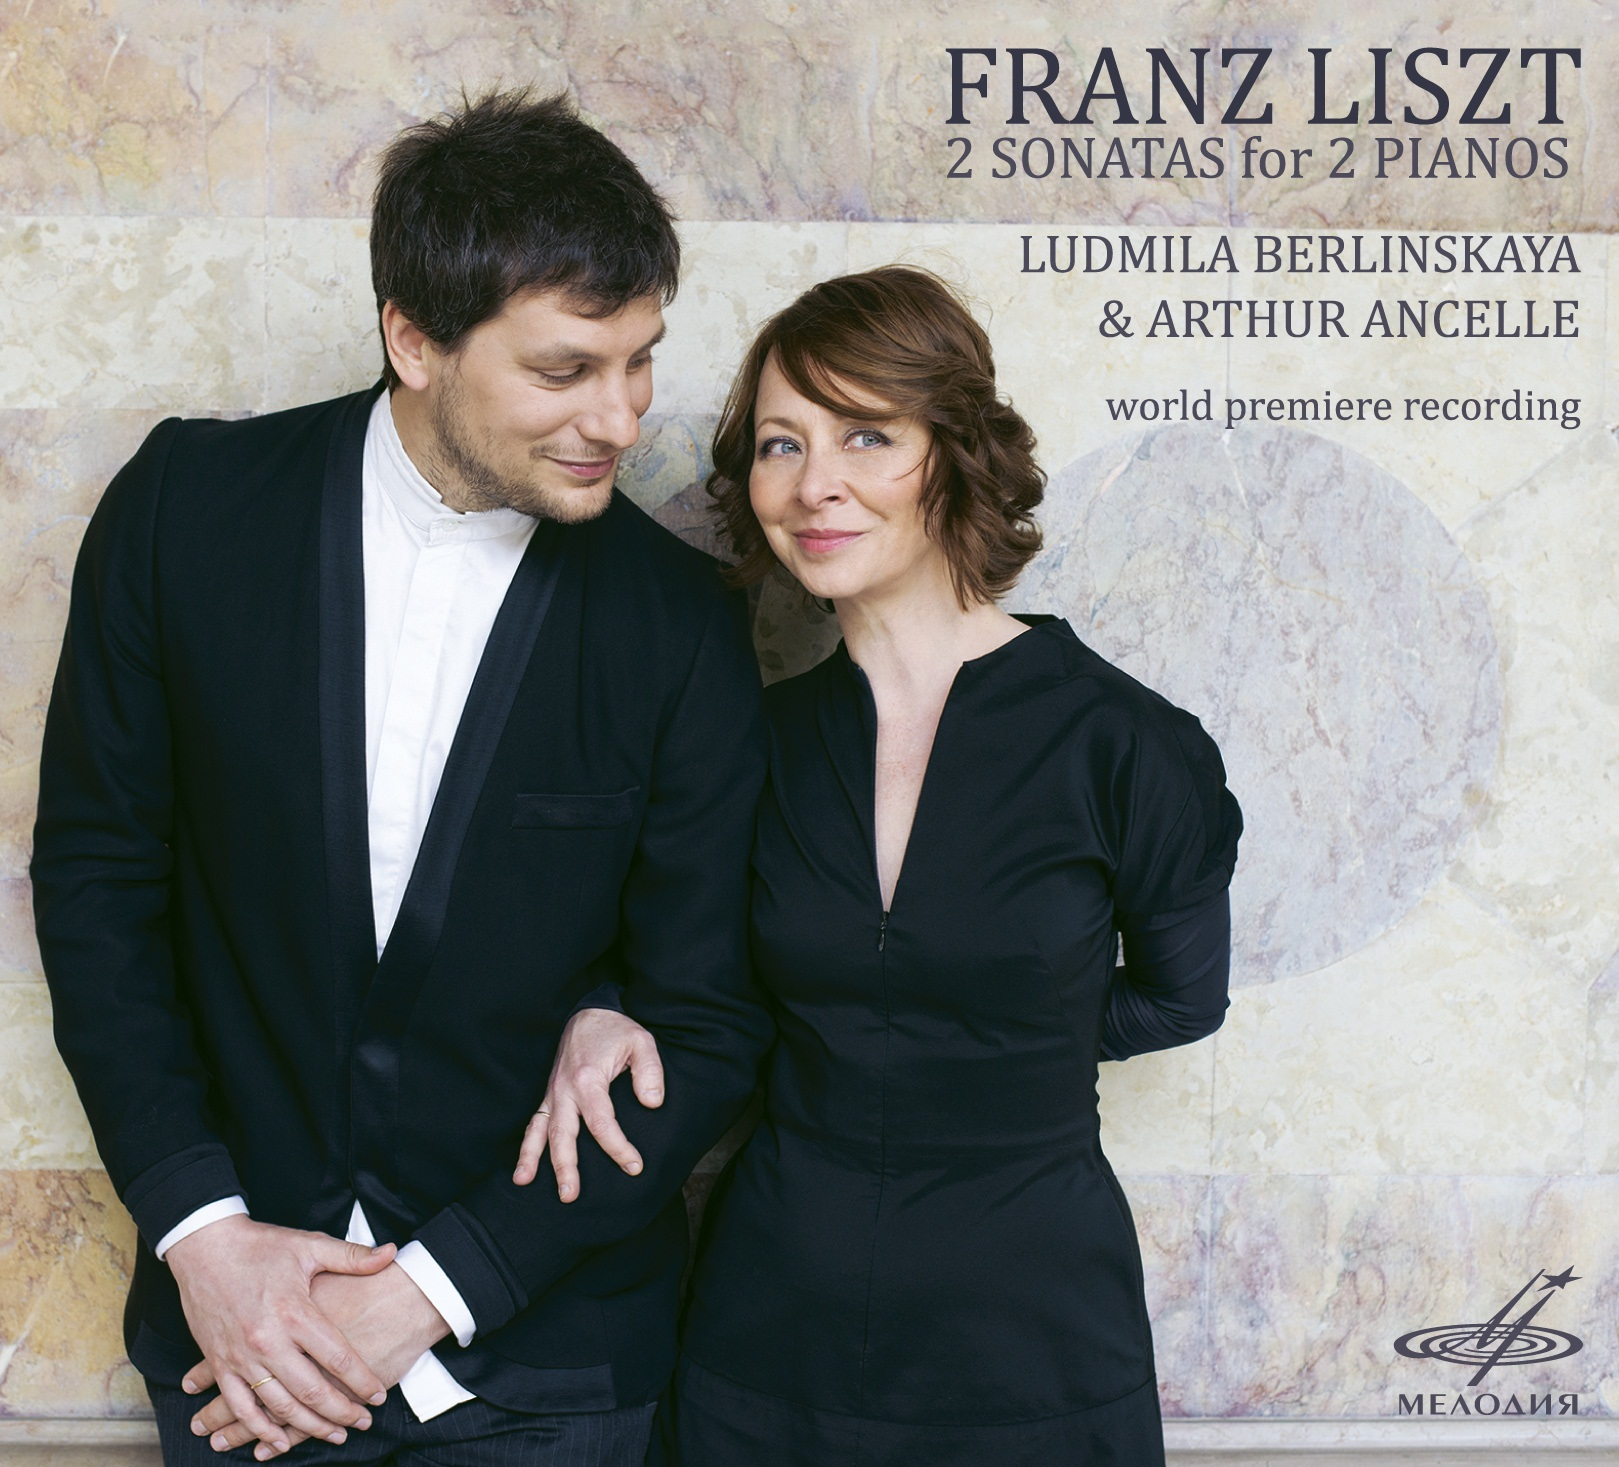 Franz Liszt: 2 Sonatas for 2 Pianos